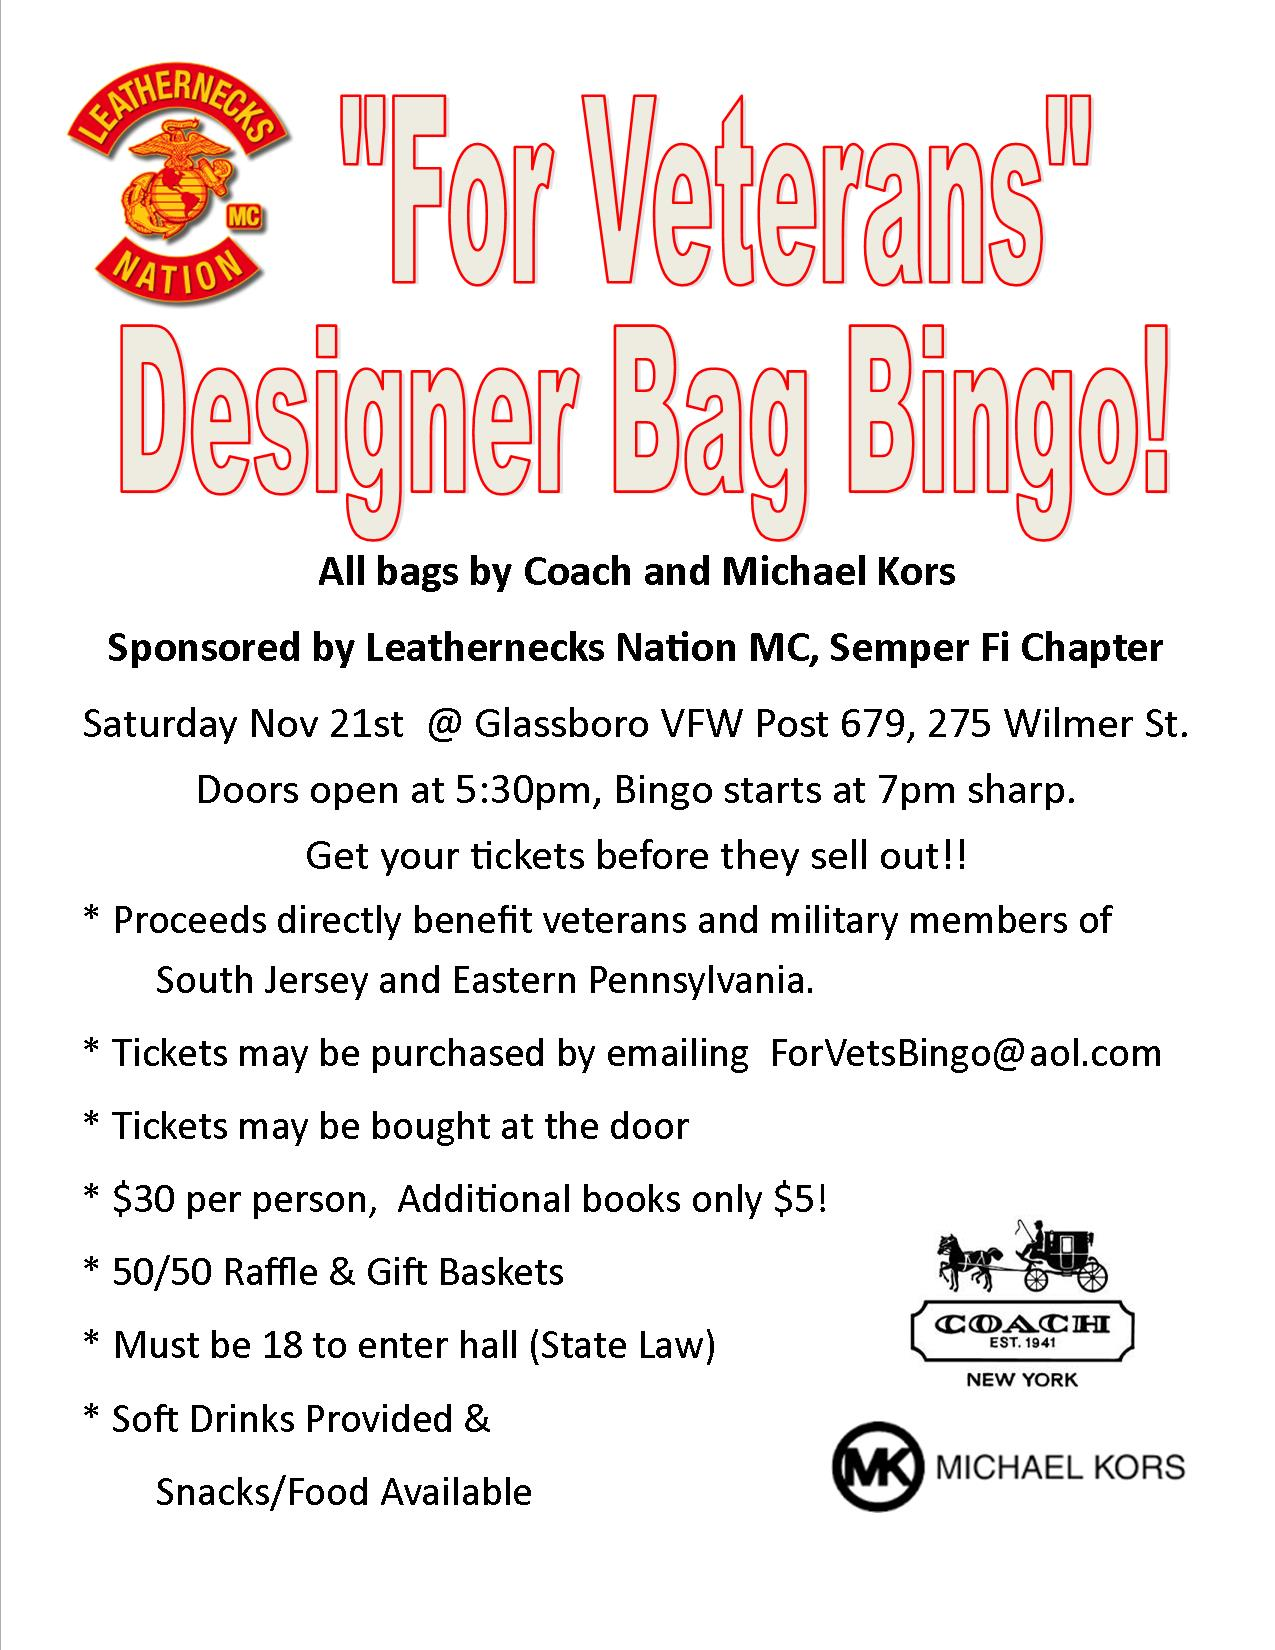 Designer Bag Bingo South Jersey